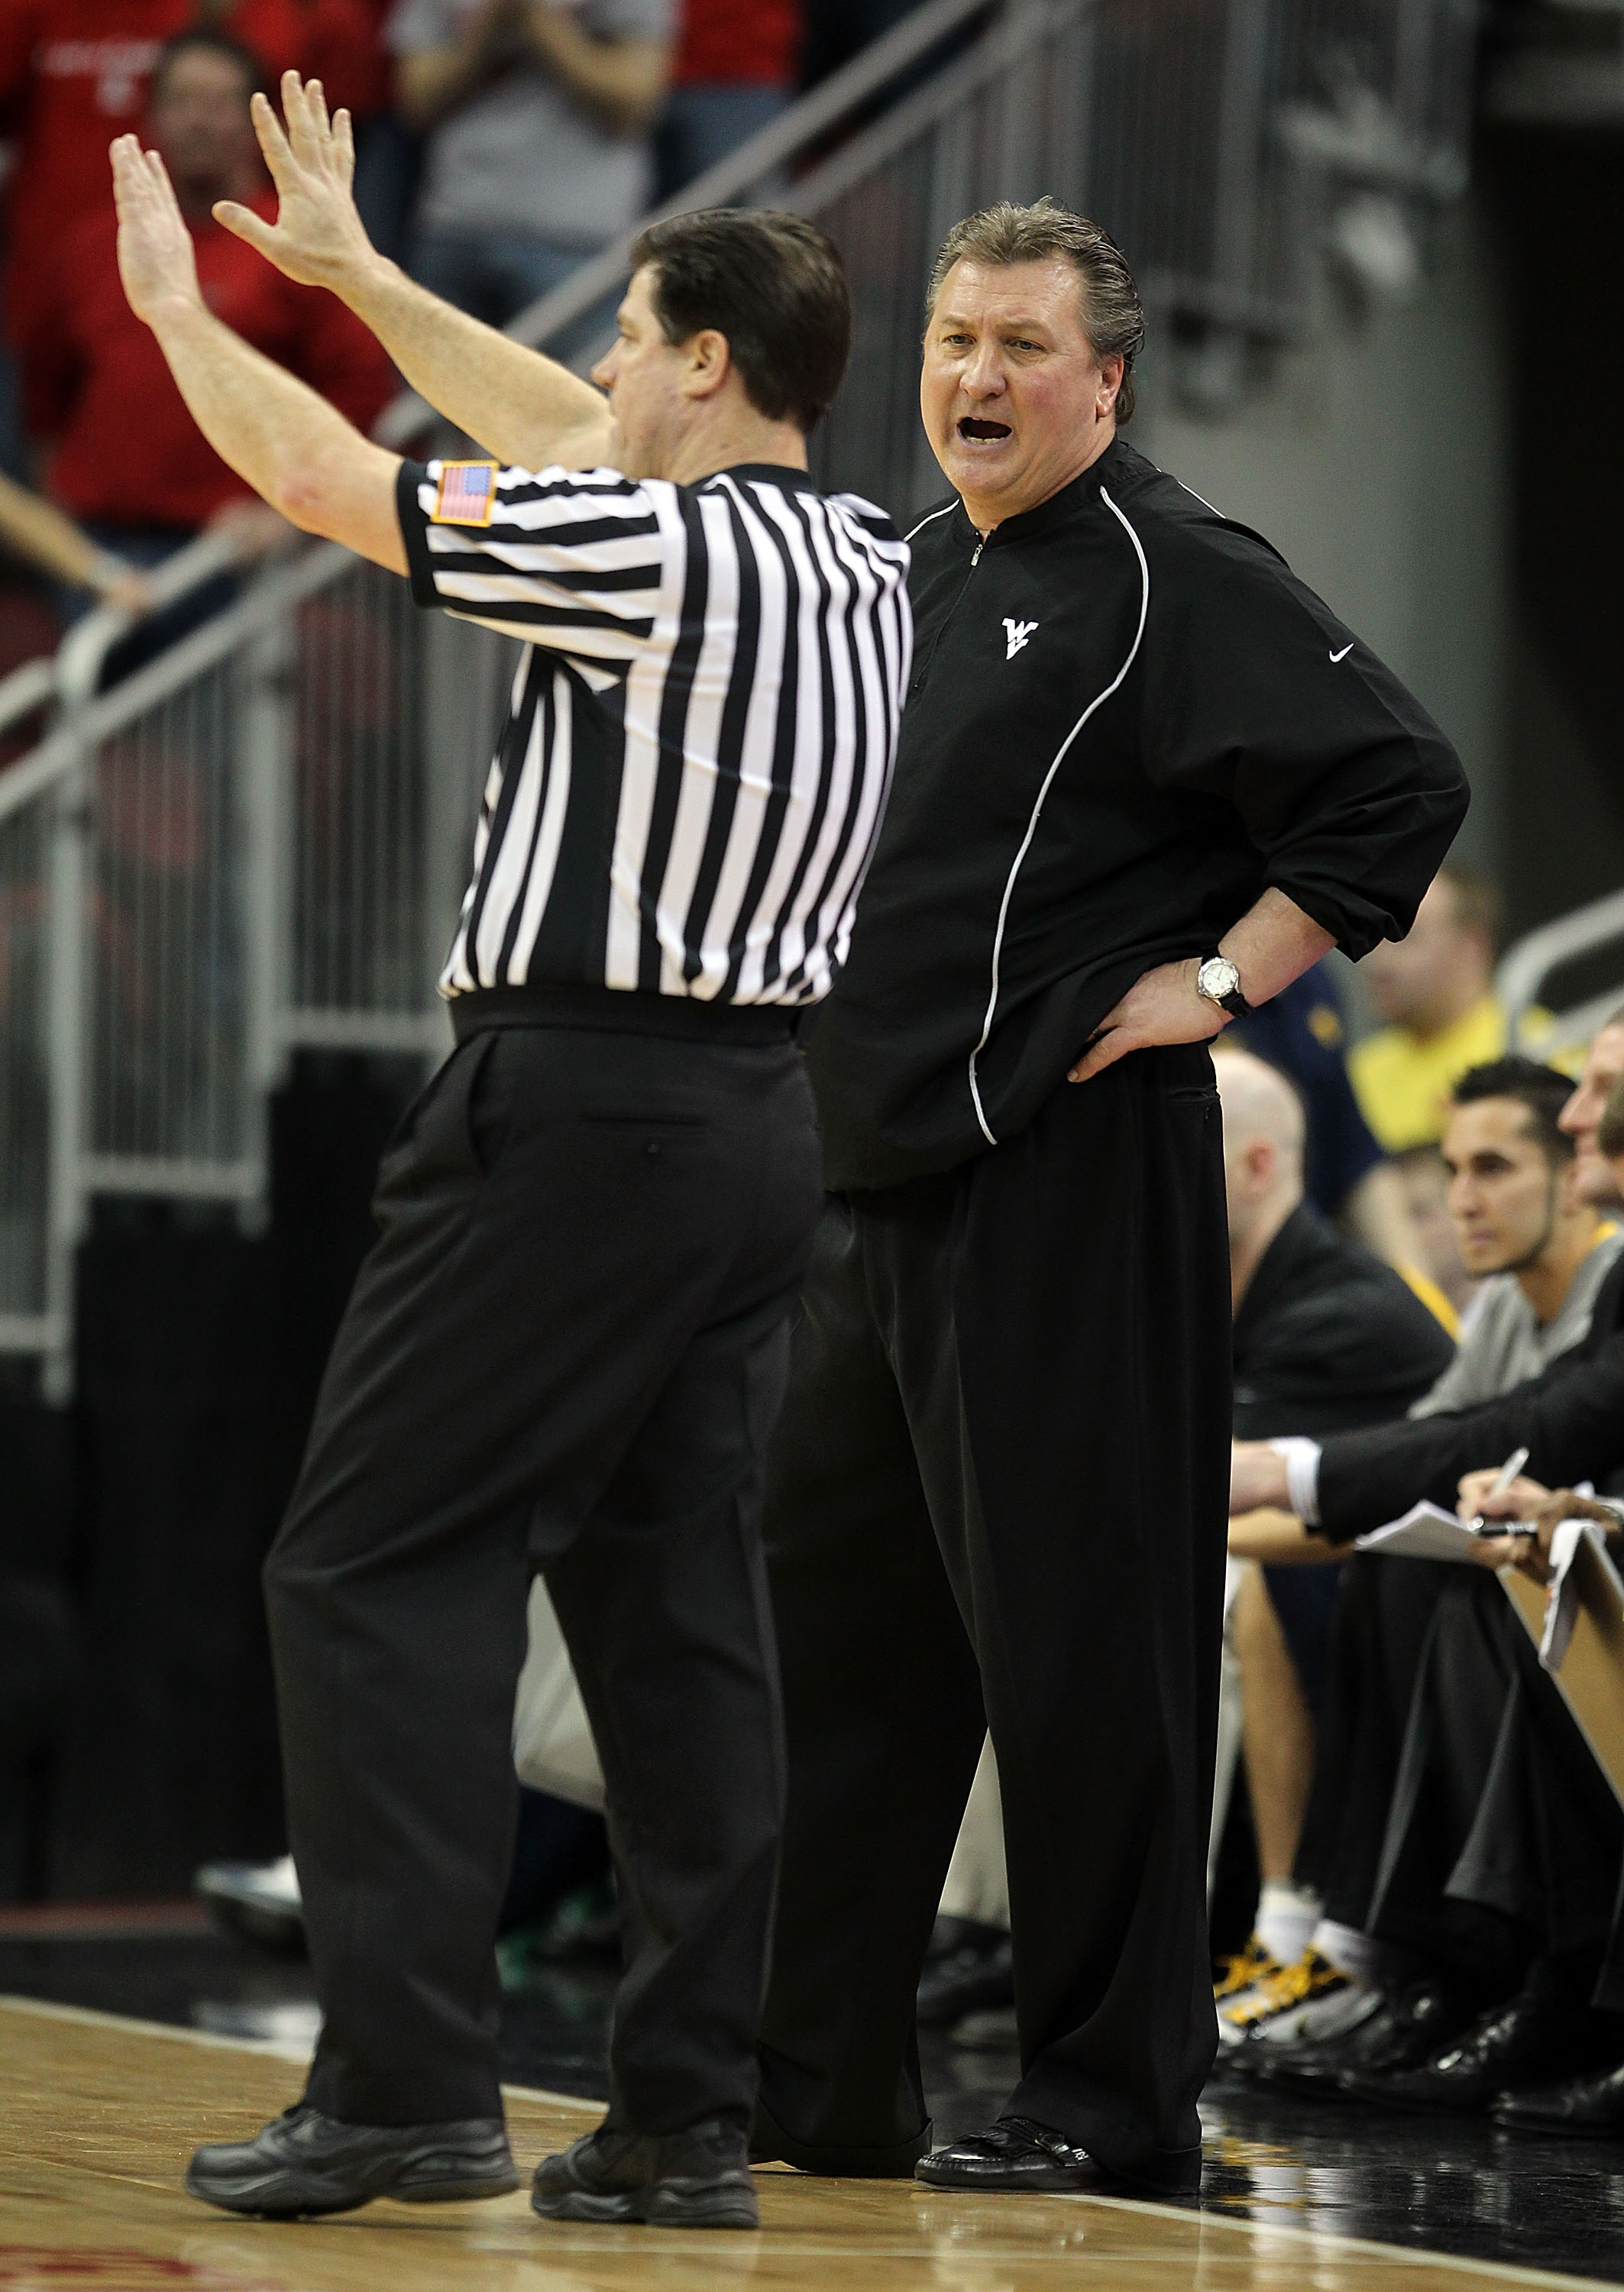 LOUISVILLE, KY - JANUARY 26:  Bob Huggins the Head Coach of the West Virginia Mountaineers yells at a game offical during the Big East Conference game against the Louisville Cardinals at the KFC Yum! Center on January 26, 2011 in Louisville, Kentucky.  Lo